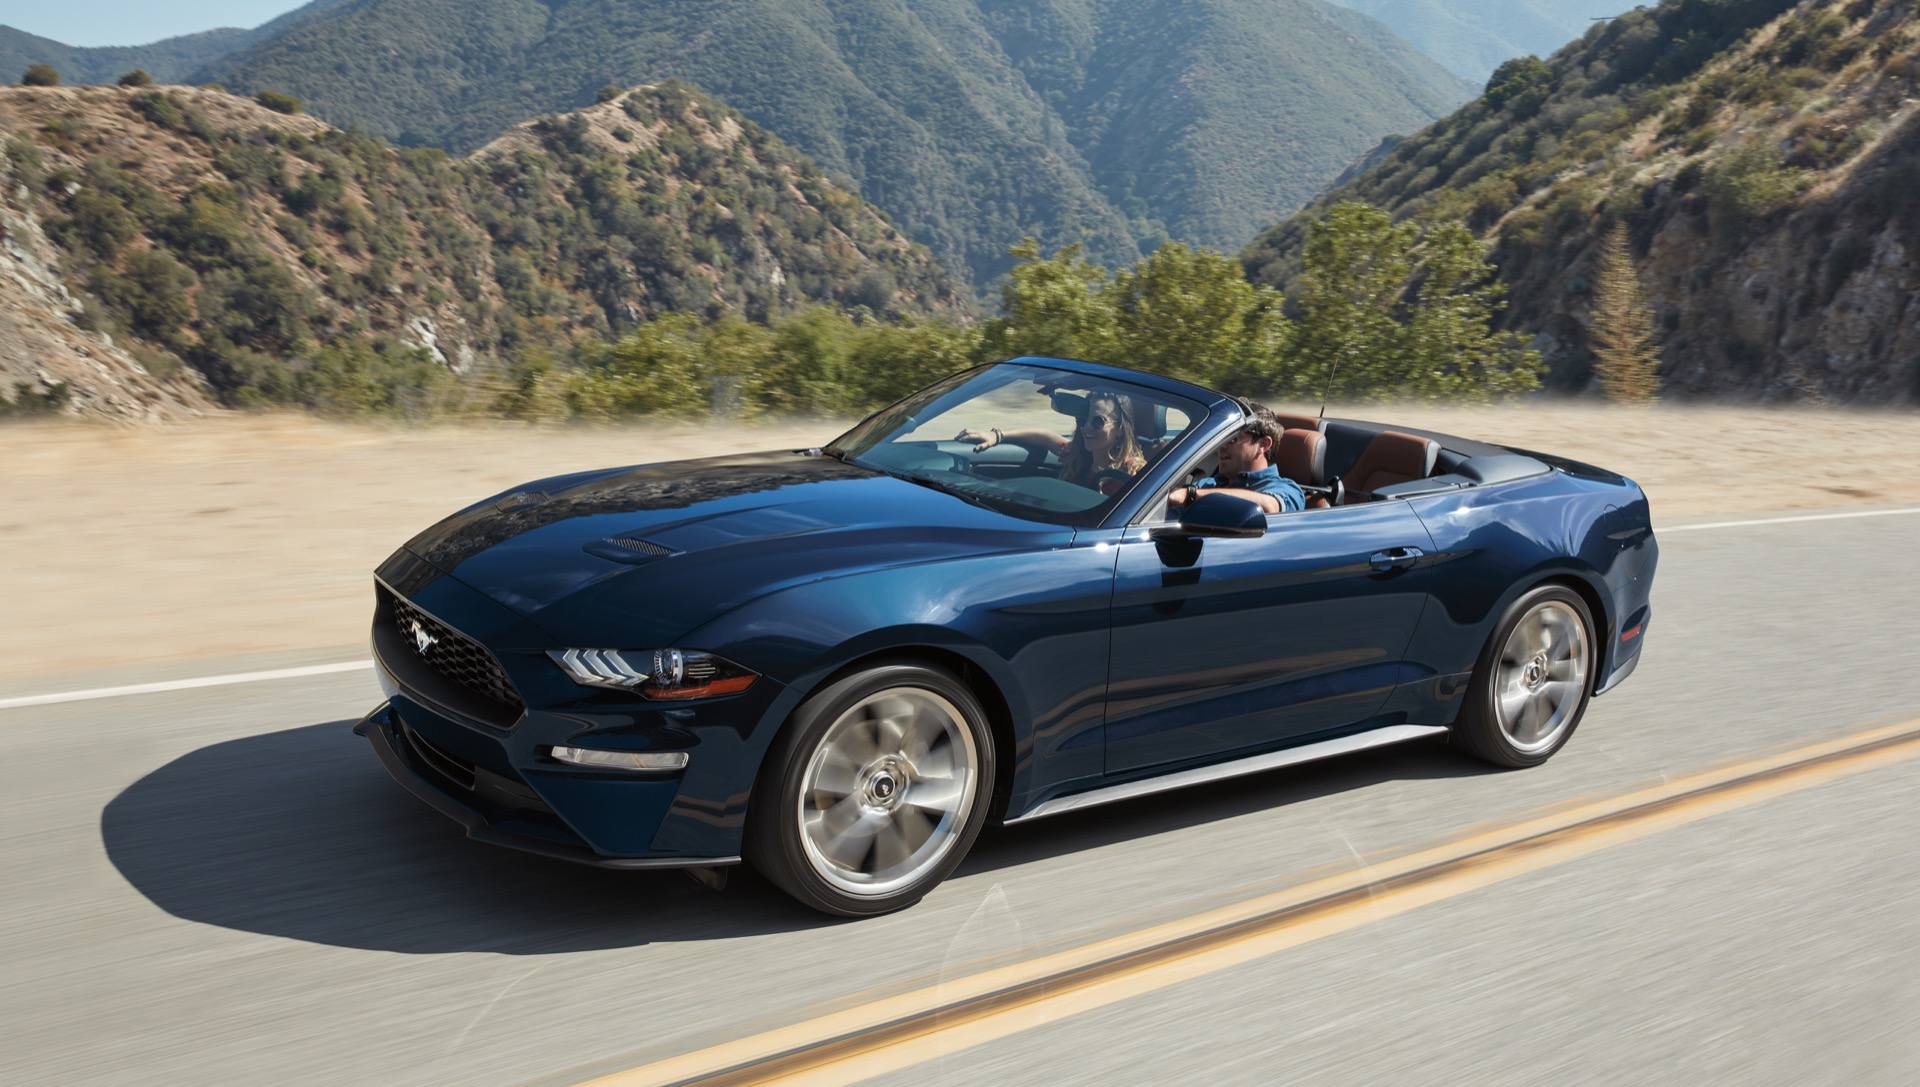 2021 Mustang Gt Convertible Review